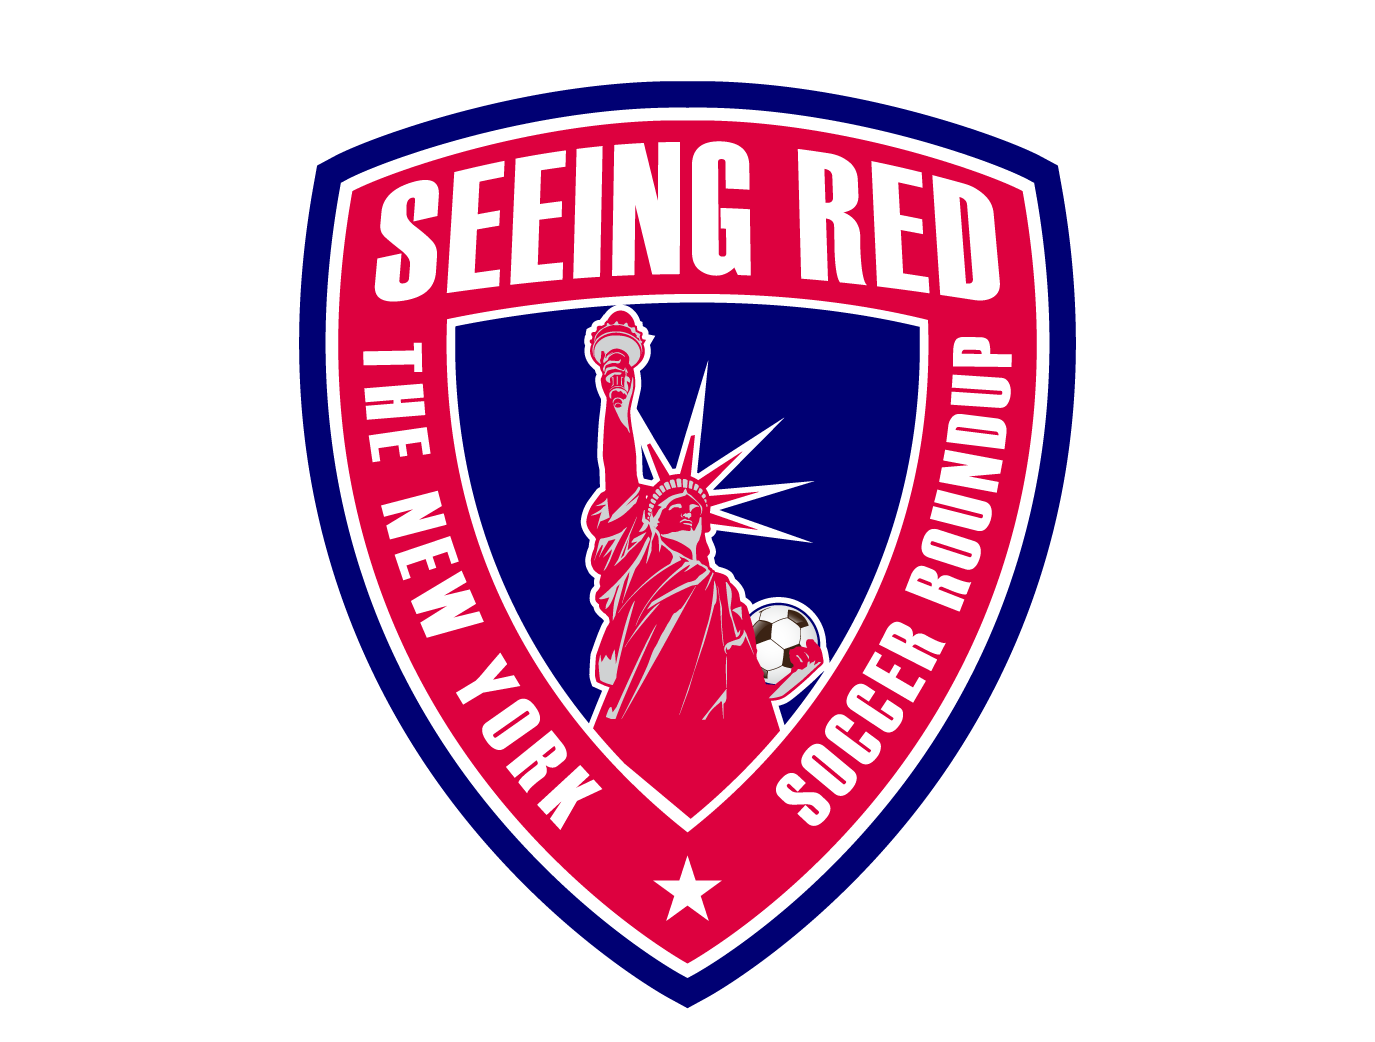 Seeing Red! The NY Soccer Roundup show art